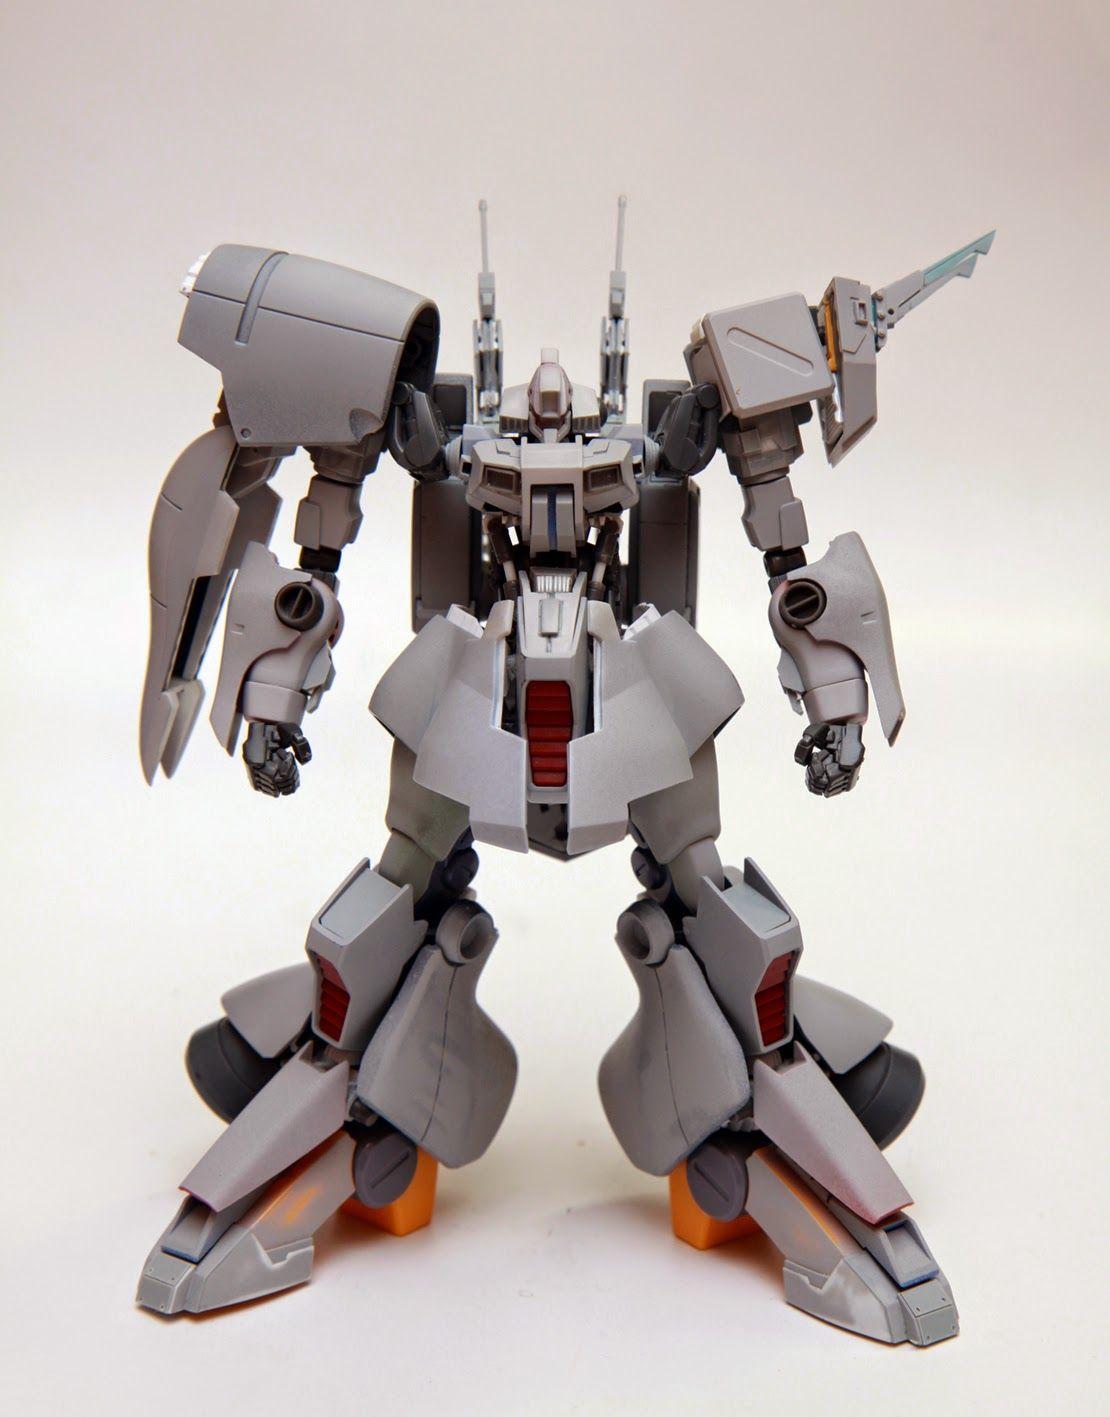 1/144 MSK-008 Dijeh Karaba (GBWC 2014 Entry) - Customized Build   Modeled by dawa